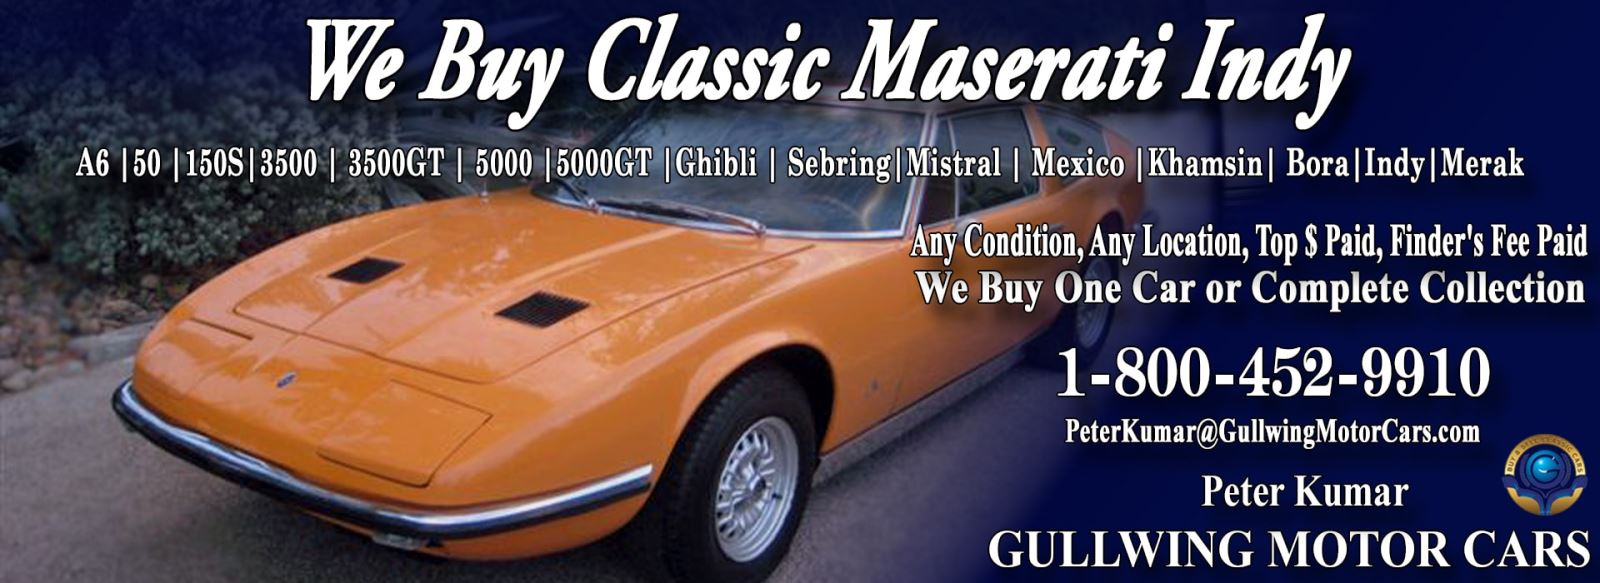 Classic Maserati Indy for sale, we buy vintage Maserati Indy. Call Peter Kumar. Gullwing Motor